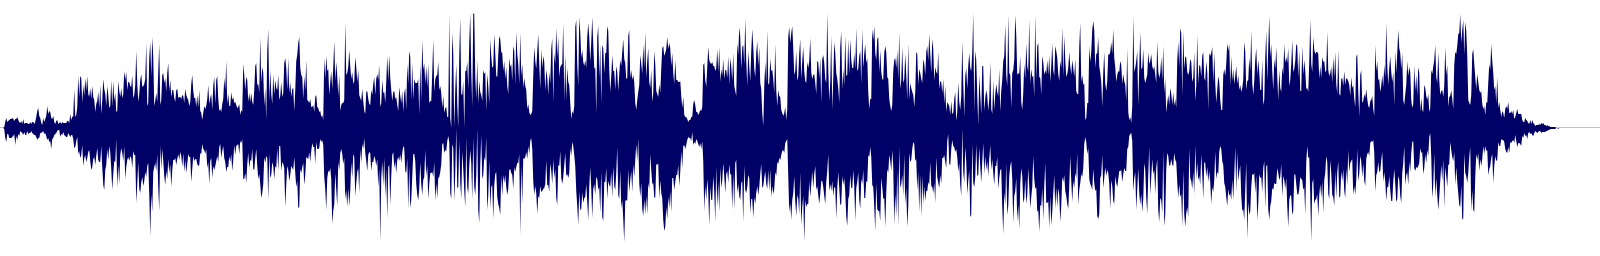 waveform of track #131244